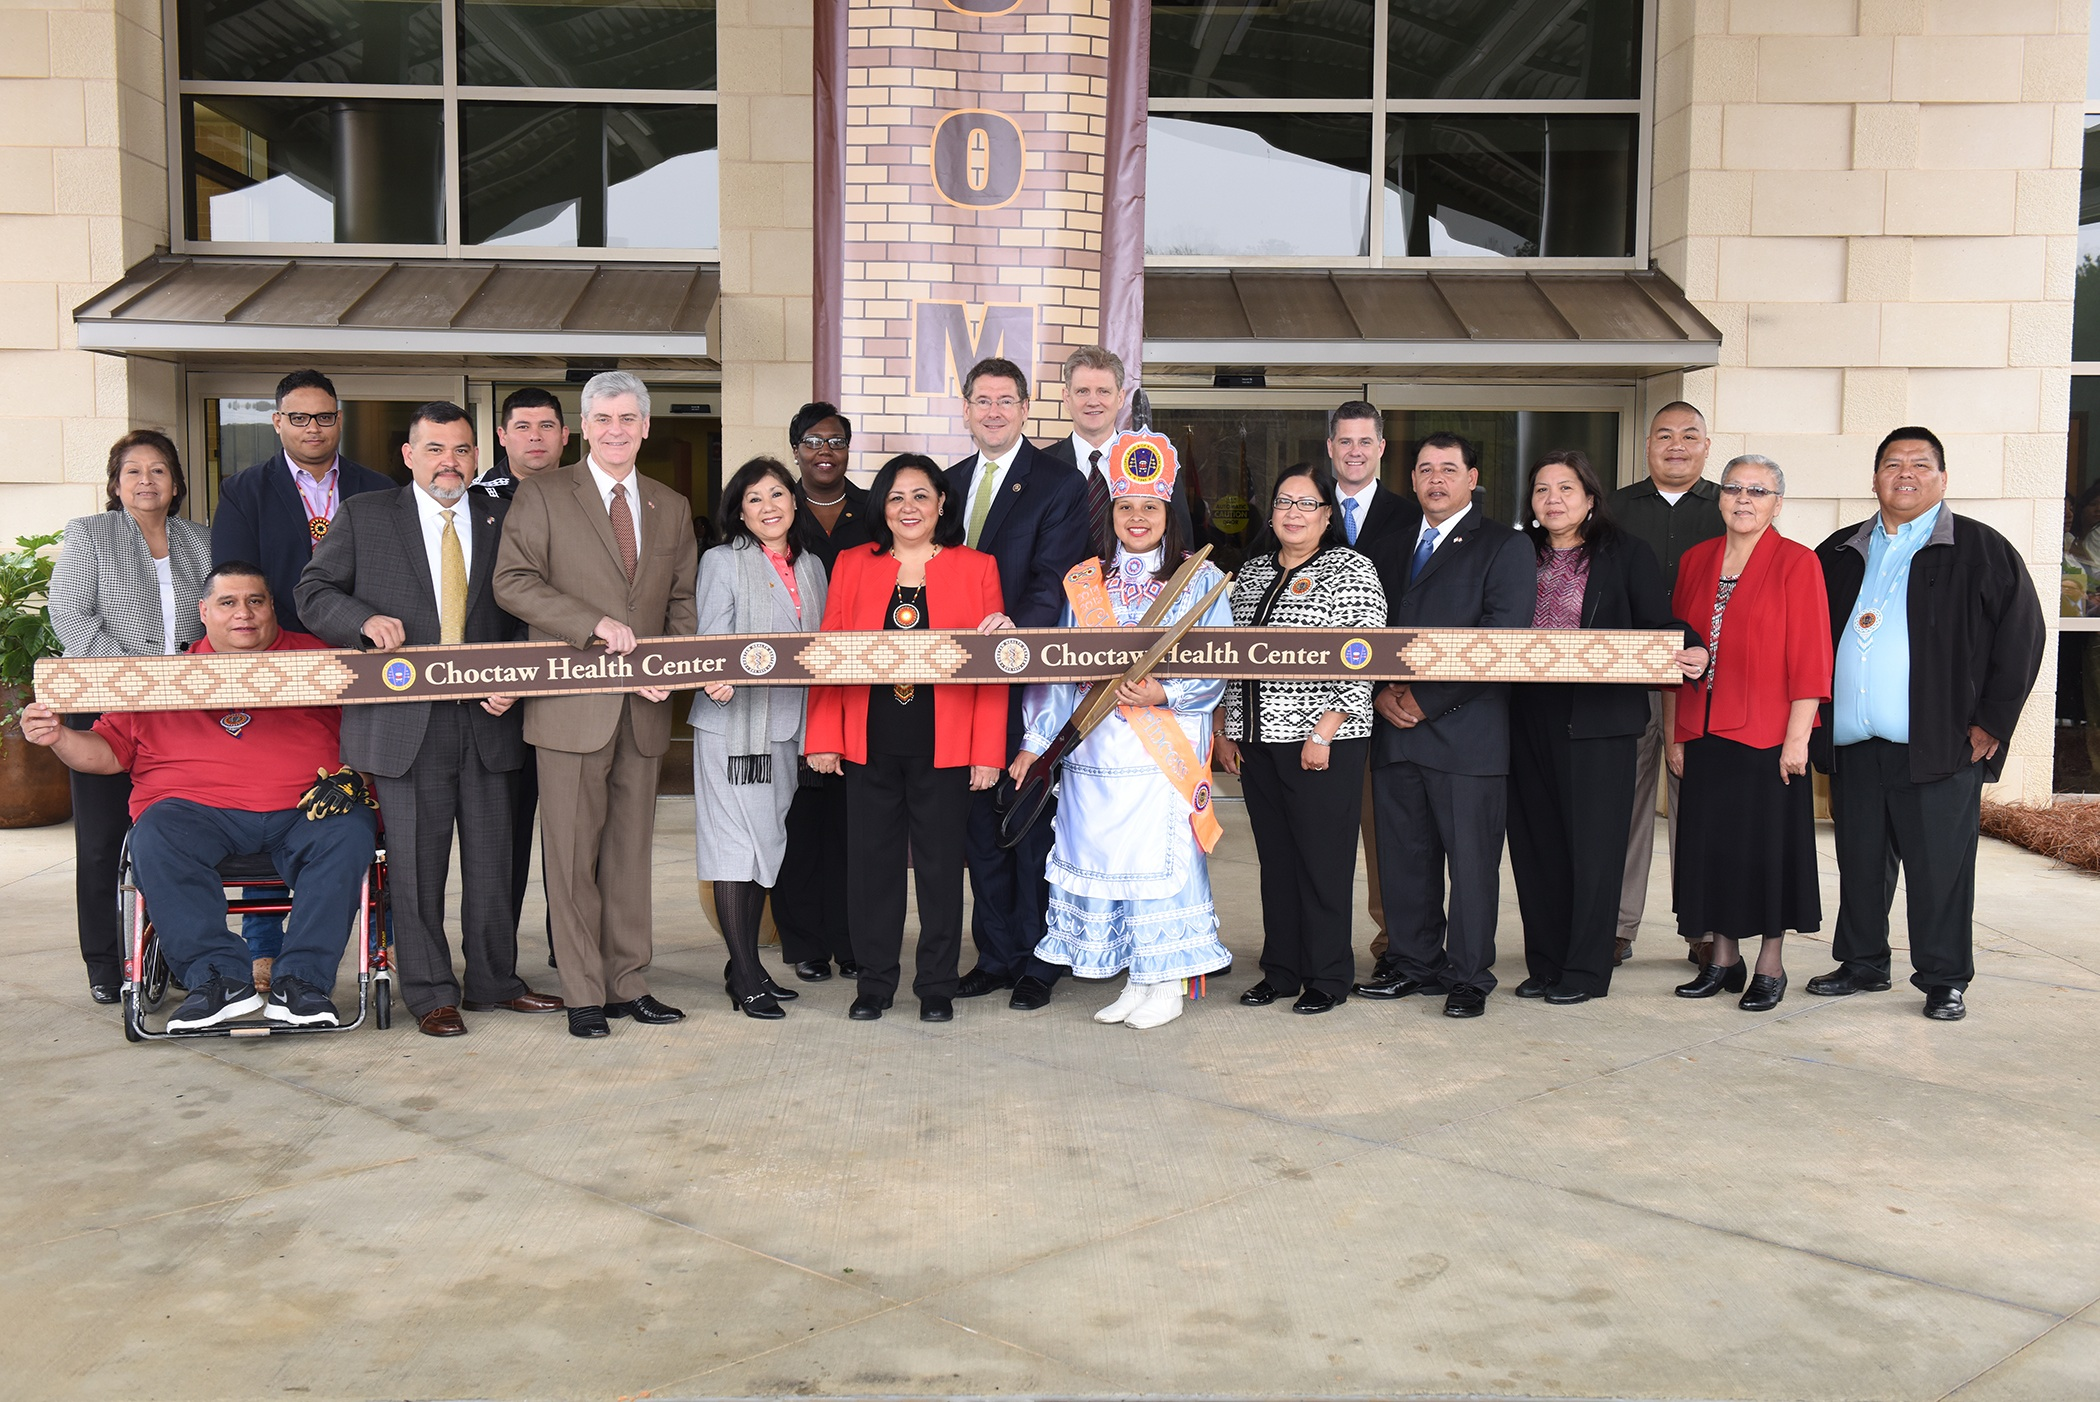 Mississippi Choctaws hold ribbon-cutting at $55M health center